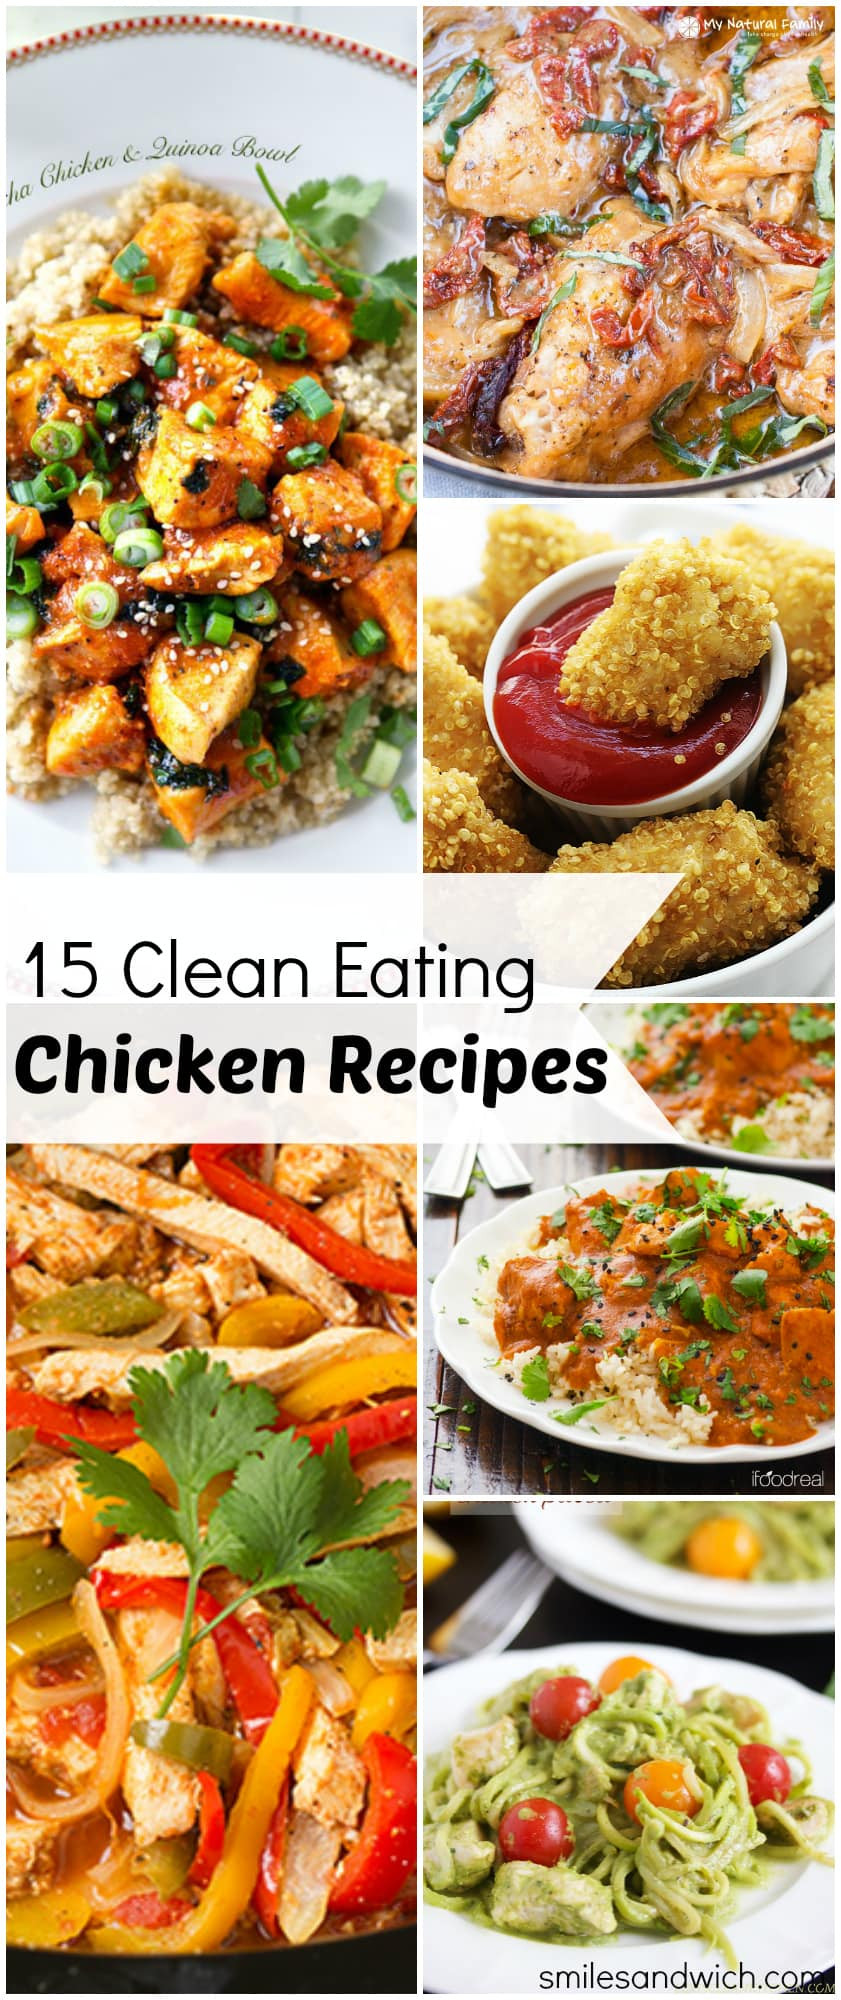 Clean Eating Dinner  15 Clean Eating Chicken Recipes Smile Sandwich